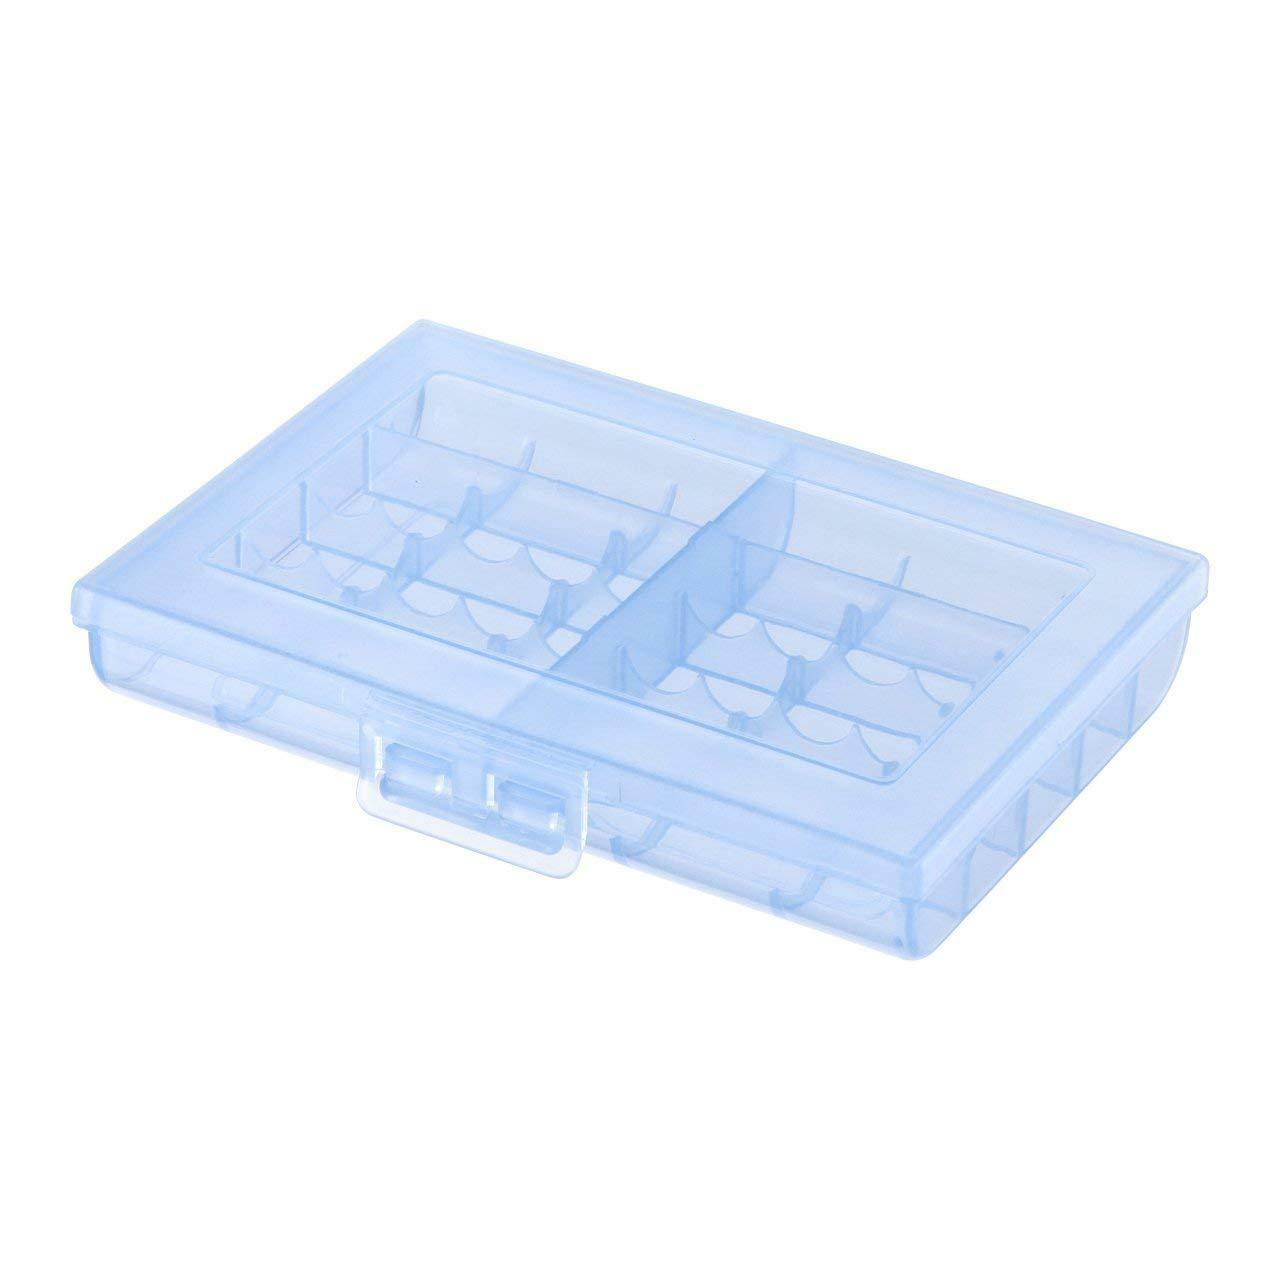 Sanwa Eneloop Storage Case for Rechargeable AA & AAA Battery case Holder Blue